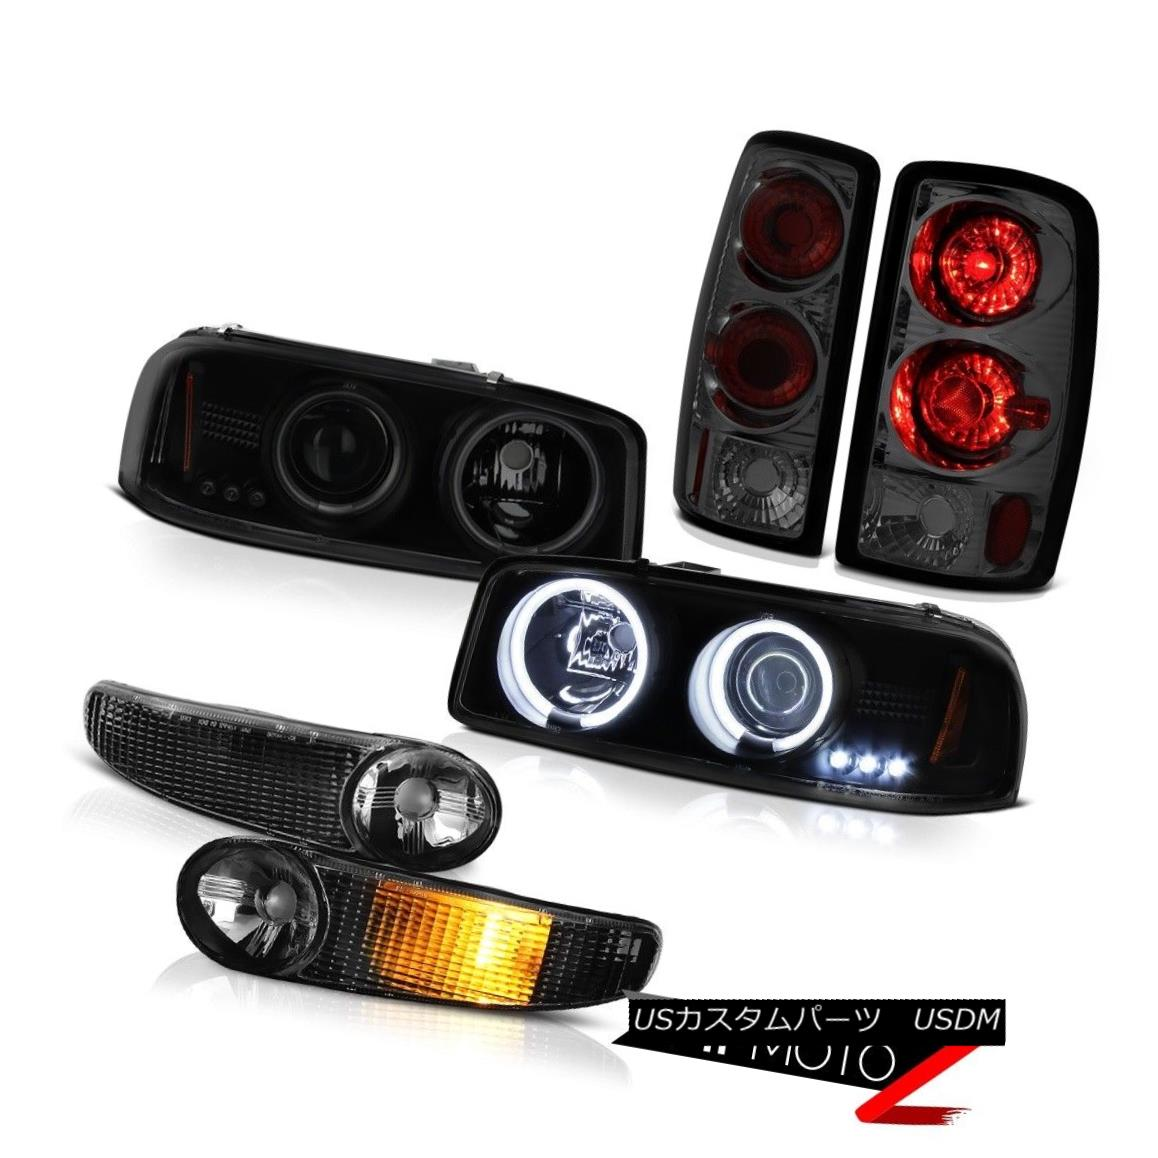 テールライト Altezza Tail Lights 00-06 Yukon Denali Bright CCFL Halo Headlights Signal Bumper Altezza Tail Lights 00-06ユーコンデナリブライトCCFL Haloヘッドライトシグナルバンパー